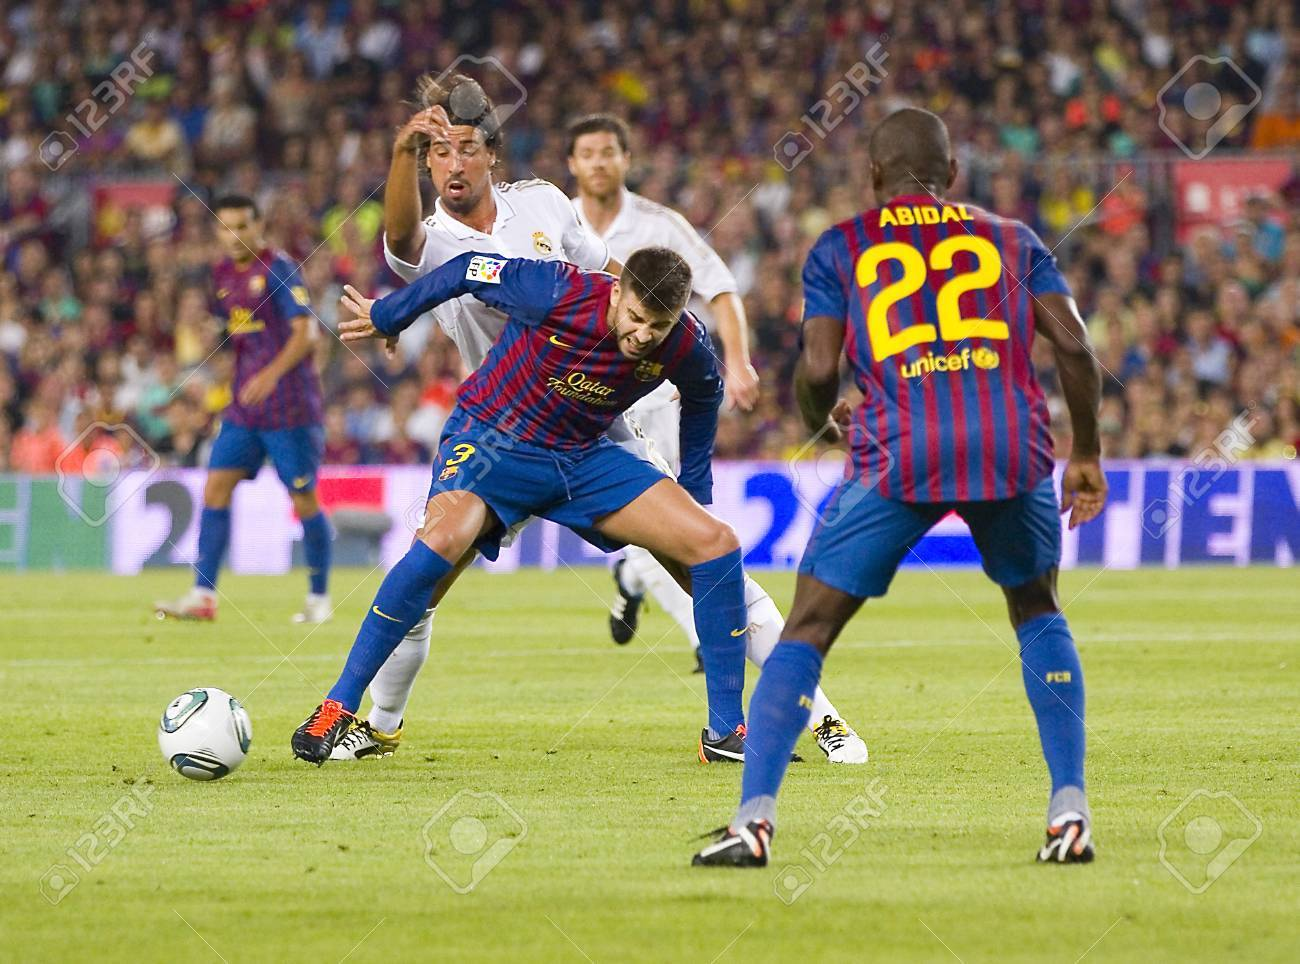 finest selection 898bc 1d441 Gerard Pique of FCB in action at the Spanish Super Cup final match between  FC Barcelona and Real Madrid, 3 - 2, on August 17, 2011 in Camp Nou  stadium, ...